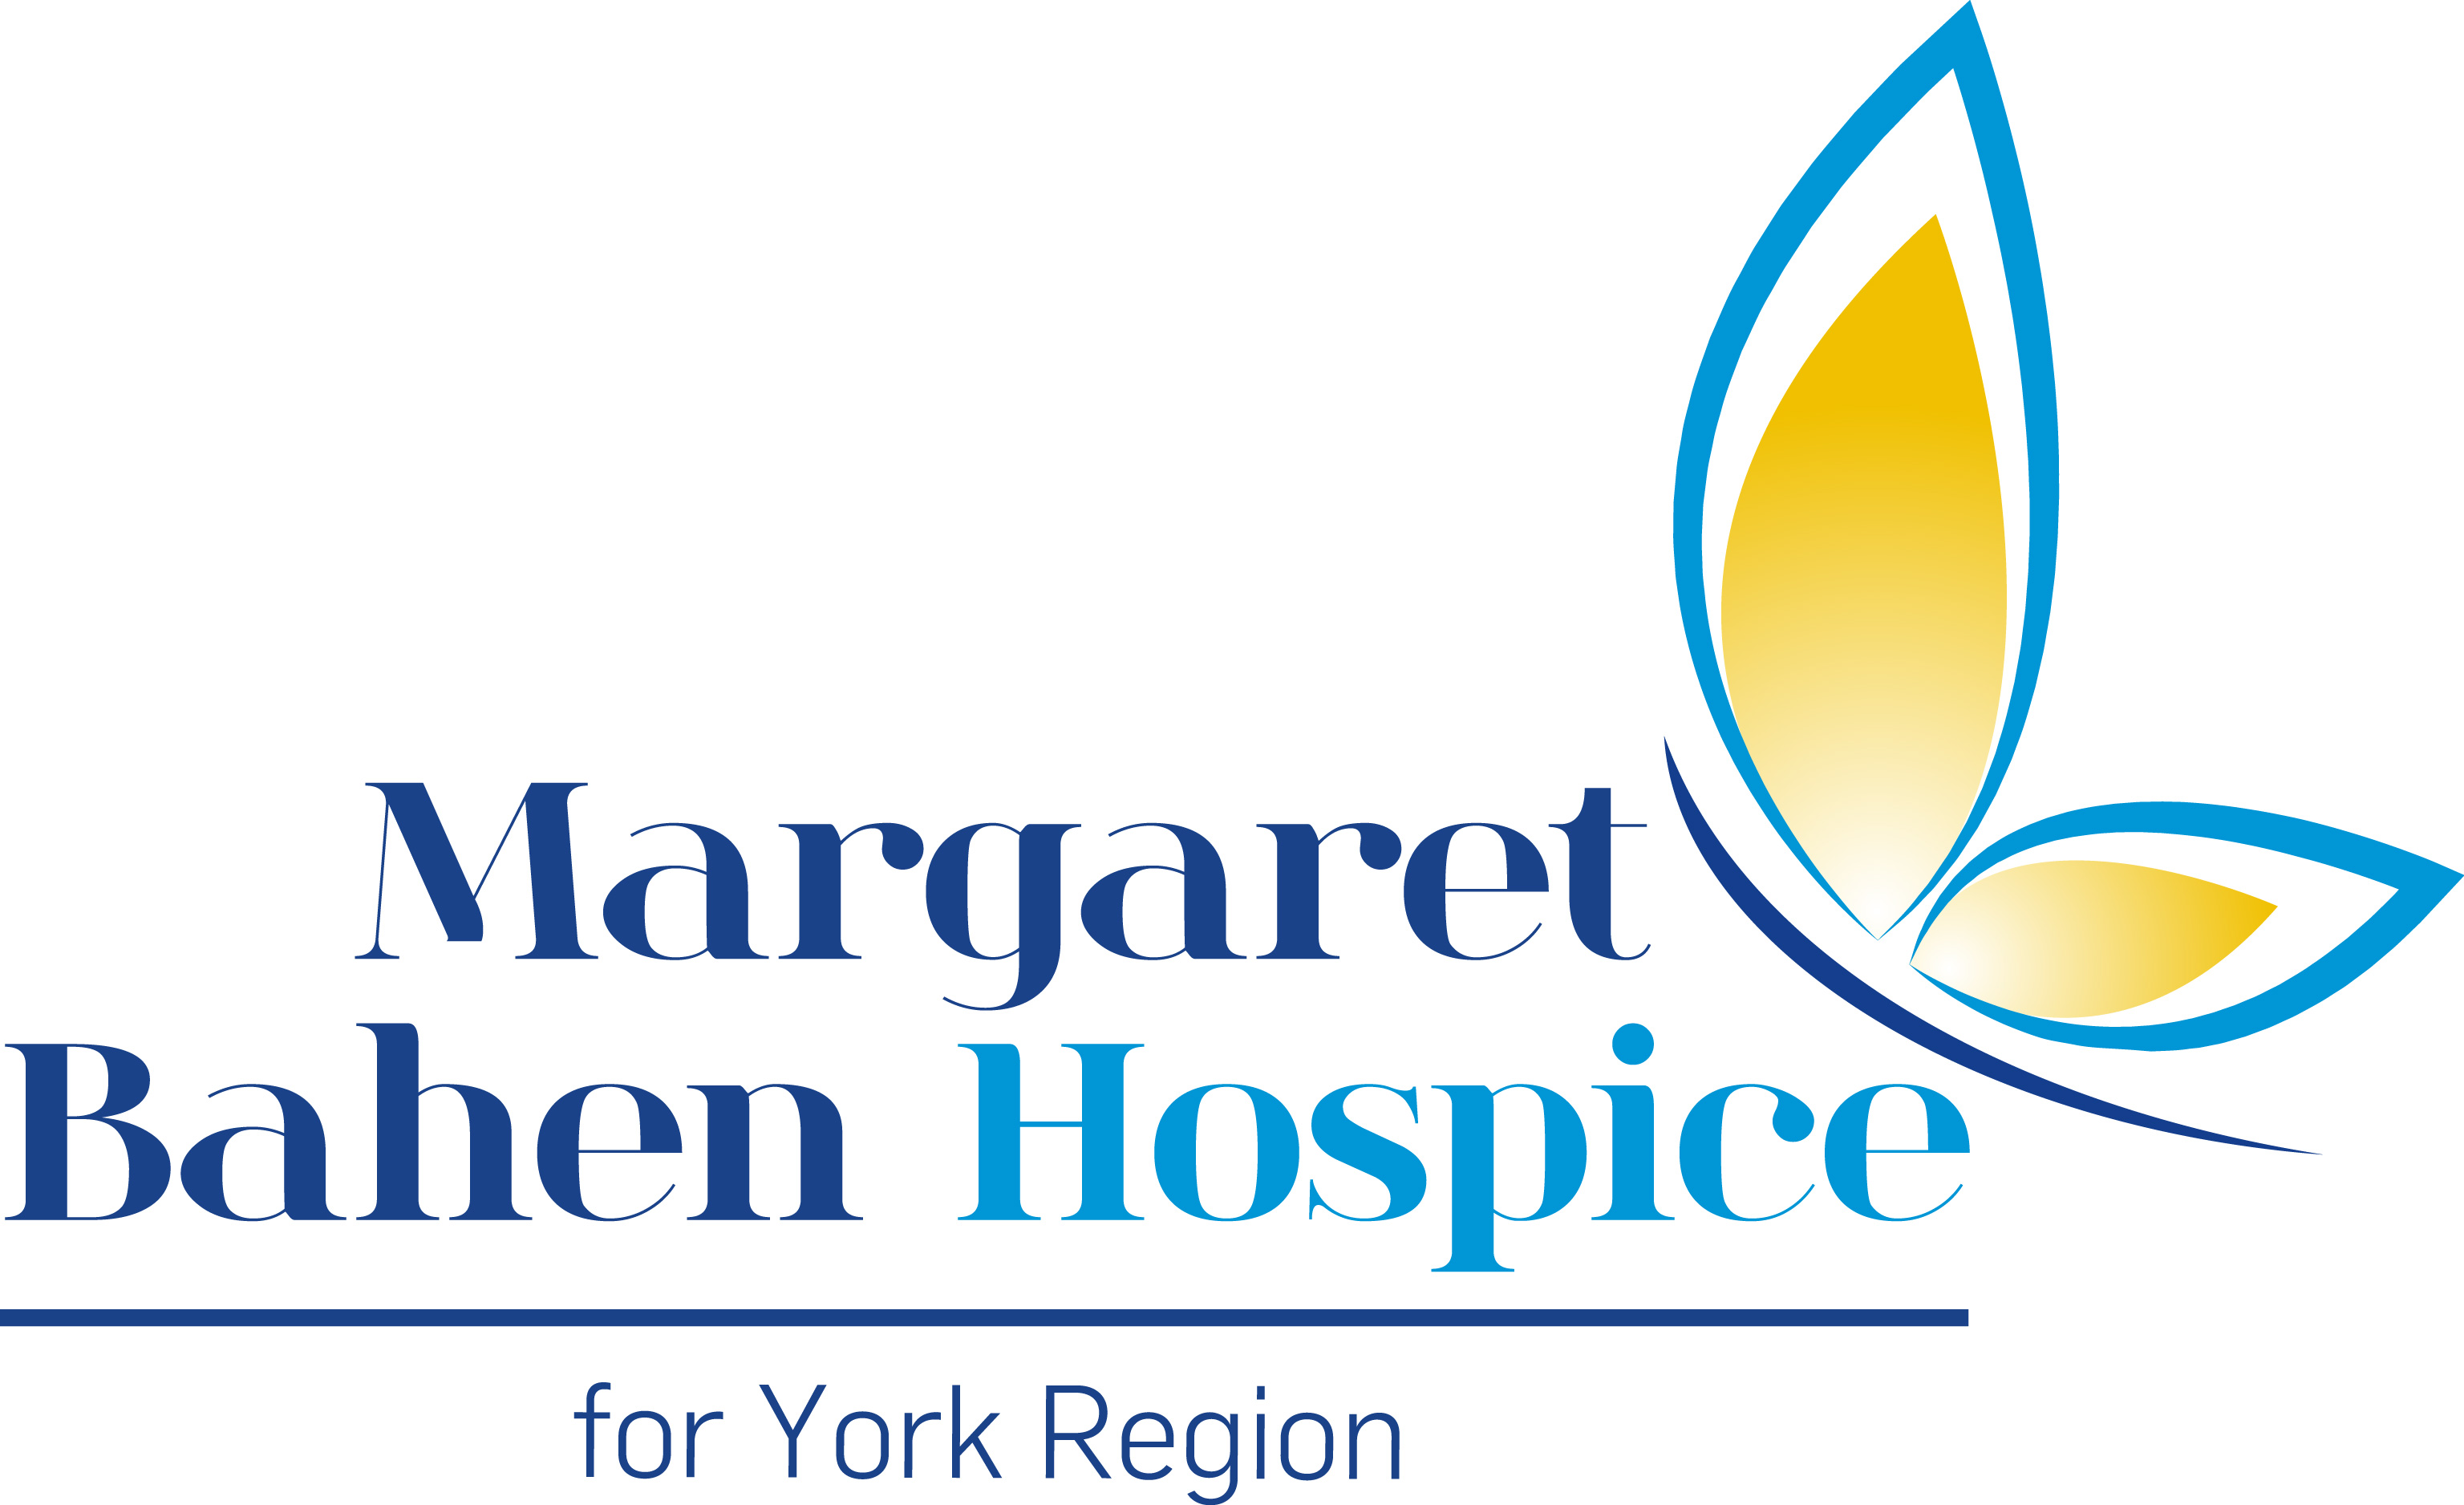 Margaret Bahen Hospice of York Region